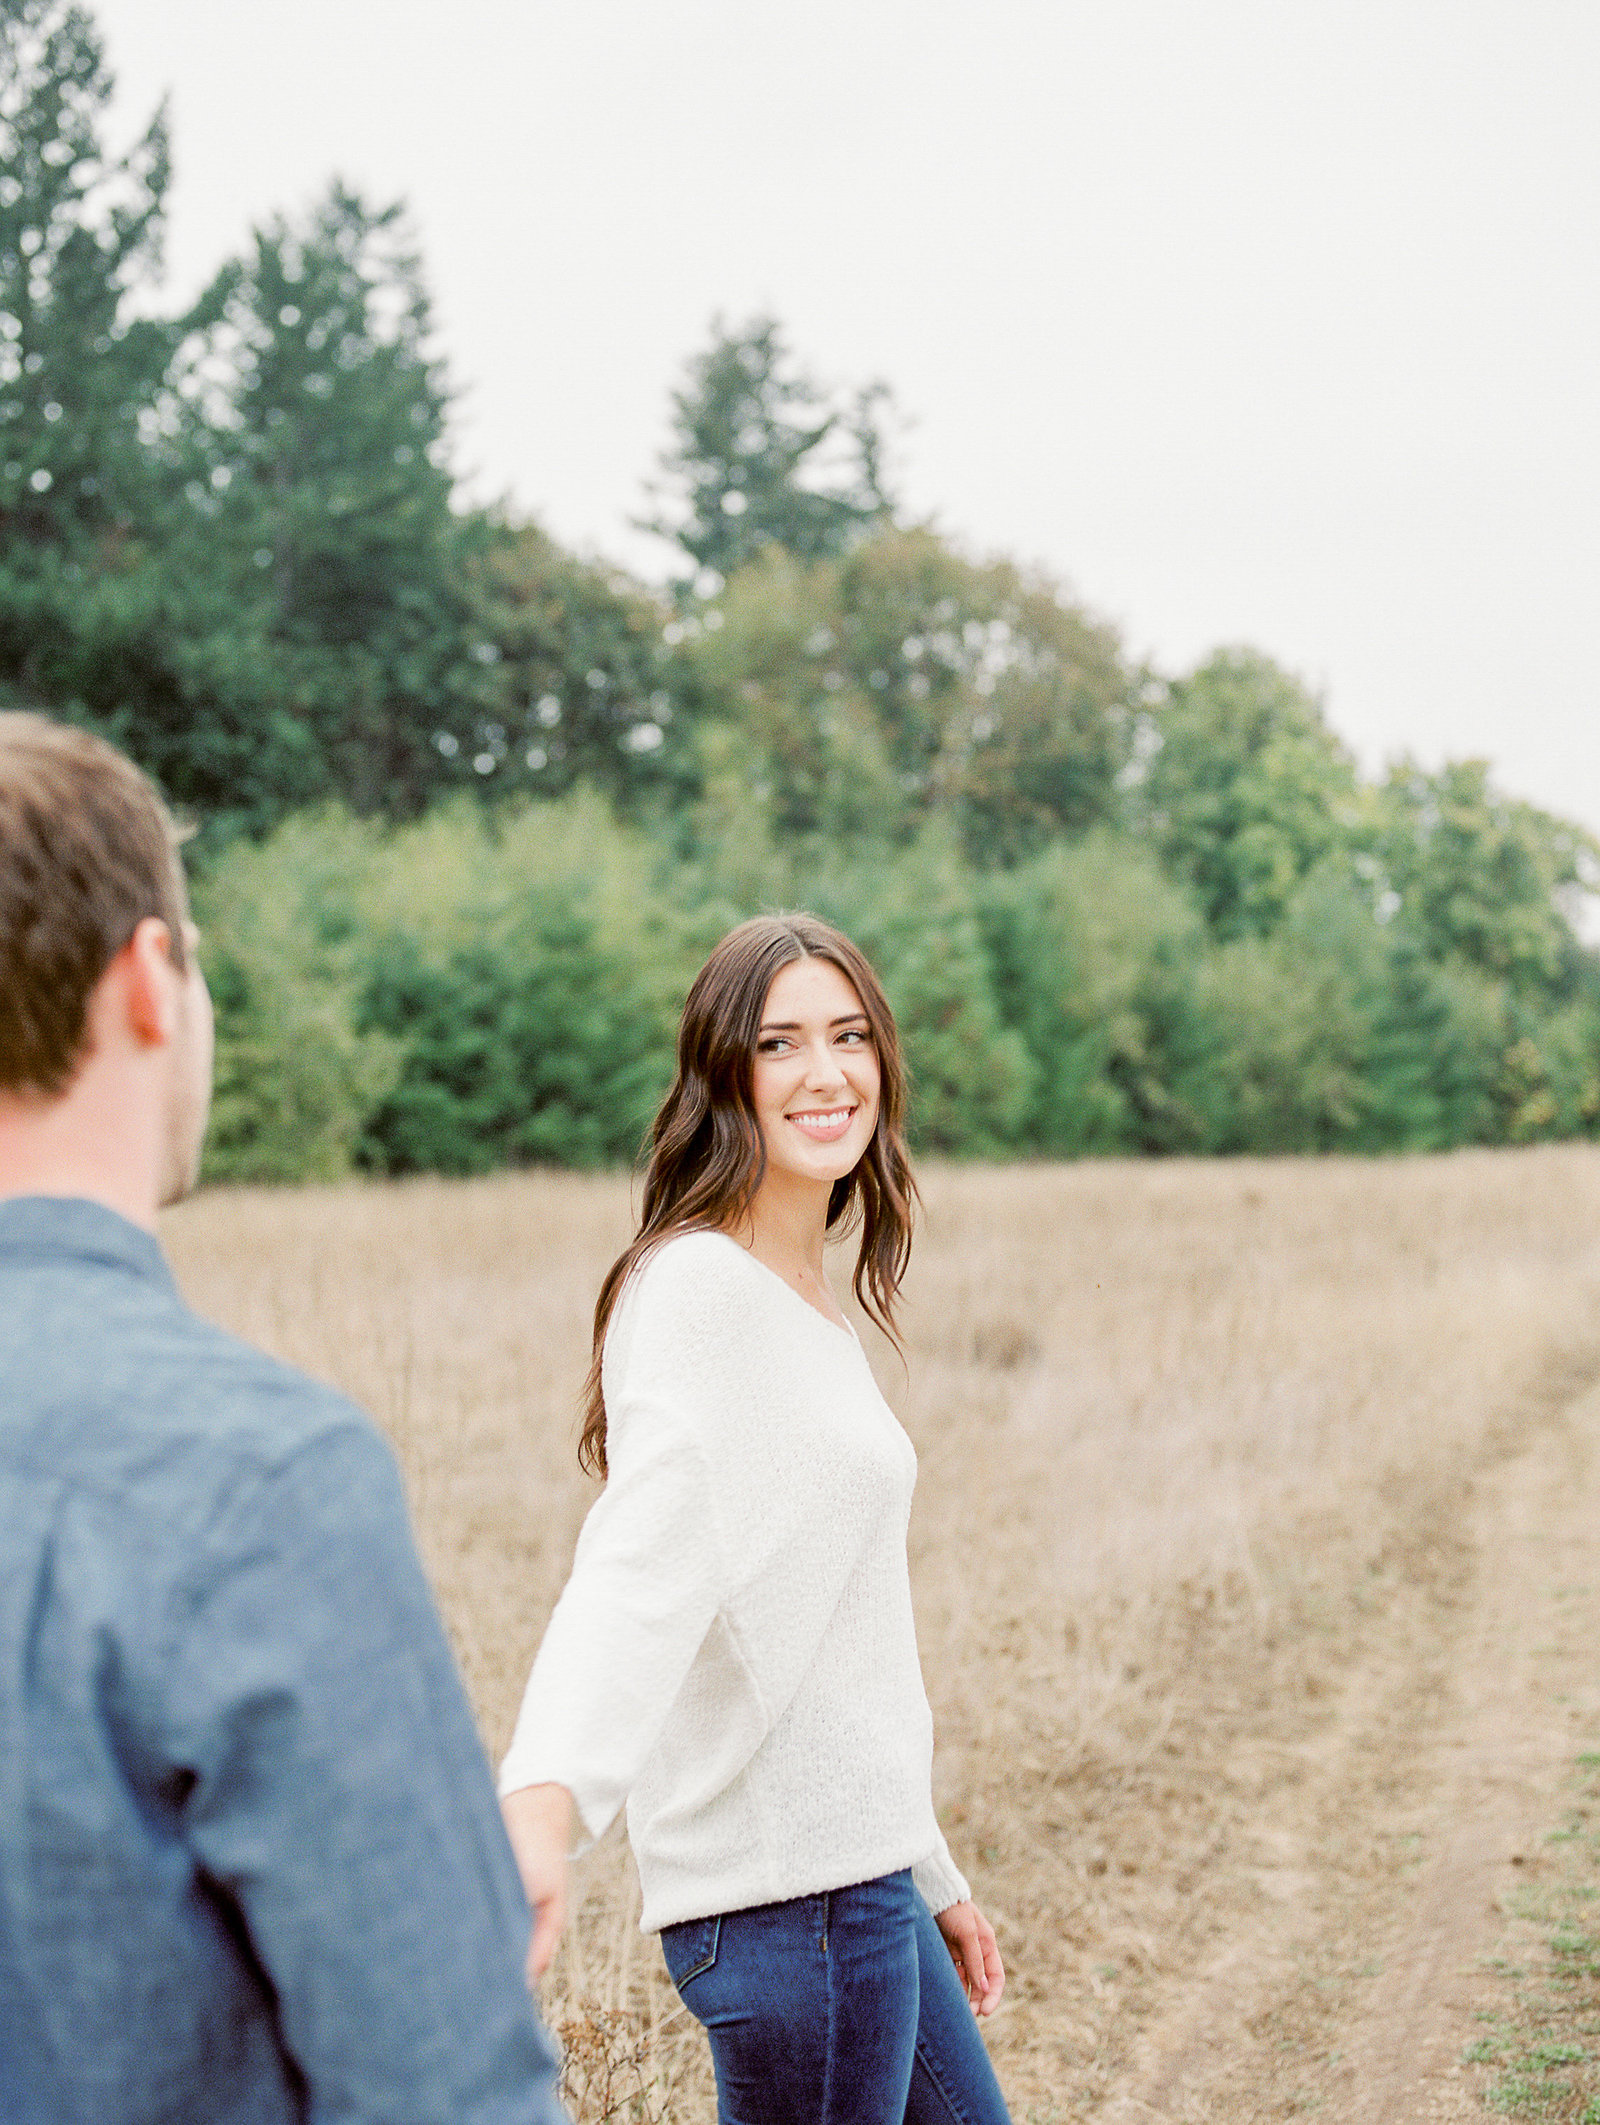 Taylor-TJ-Engagements-Georgia-Ruth-Photography-29